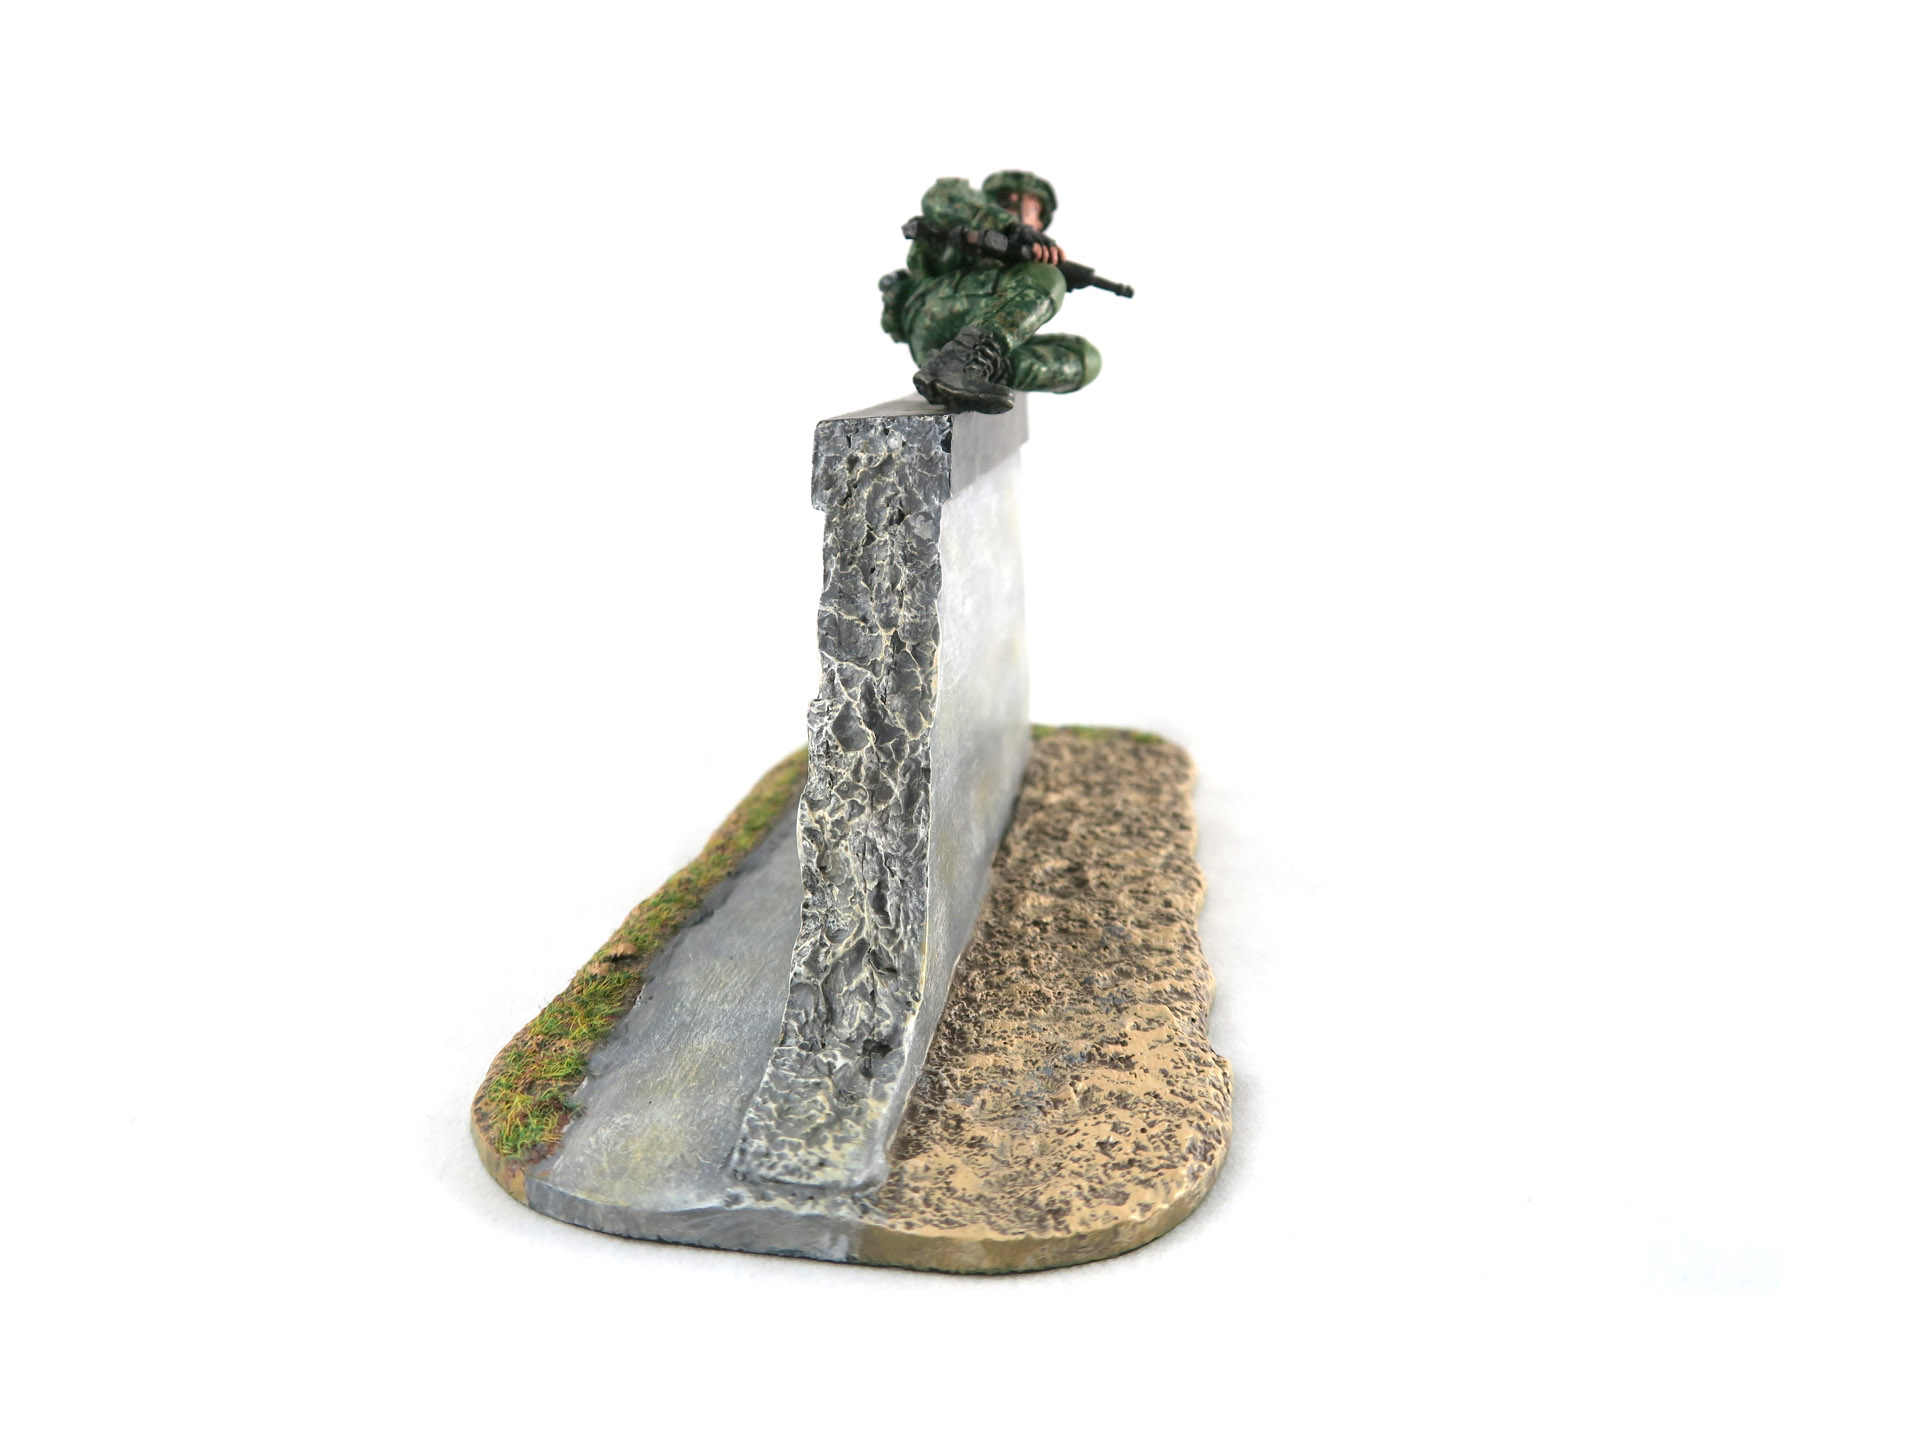 SAF Standard Obstacle Course SOC Low Wall Obstacle Toy Soldier Collectible Figurine (Side)